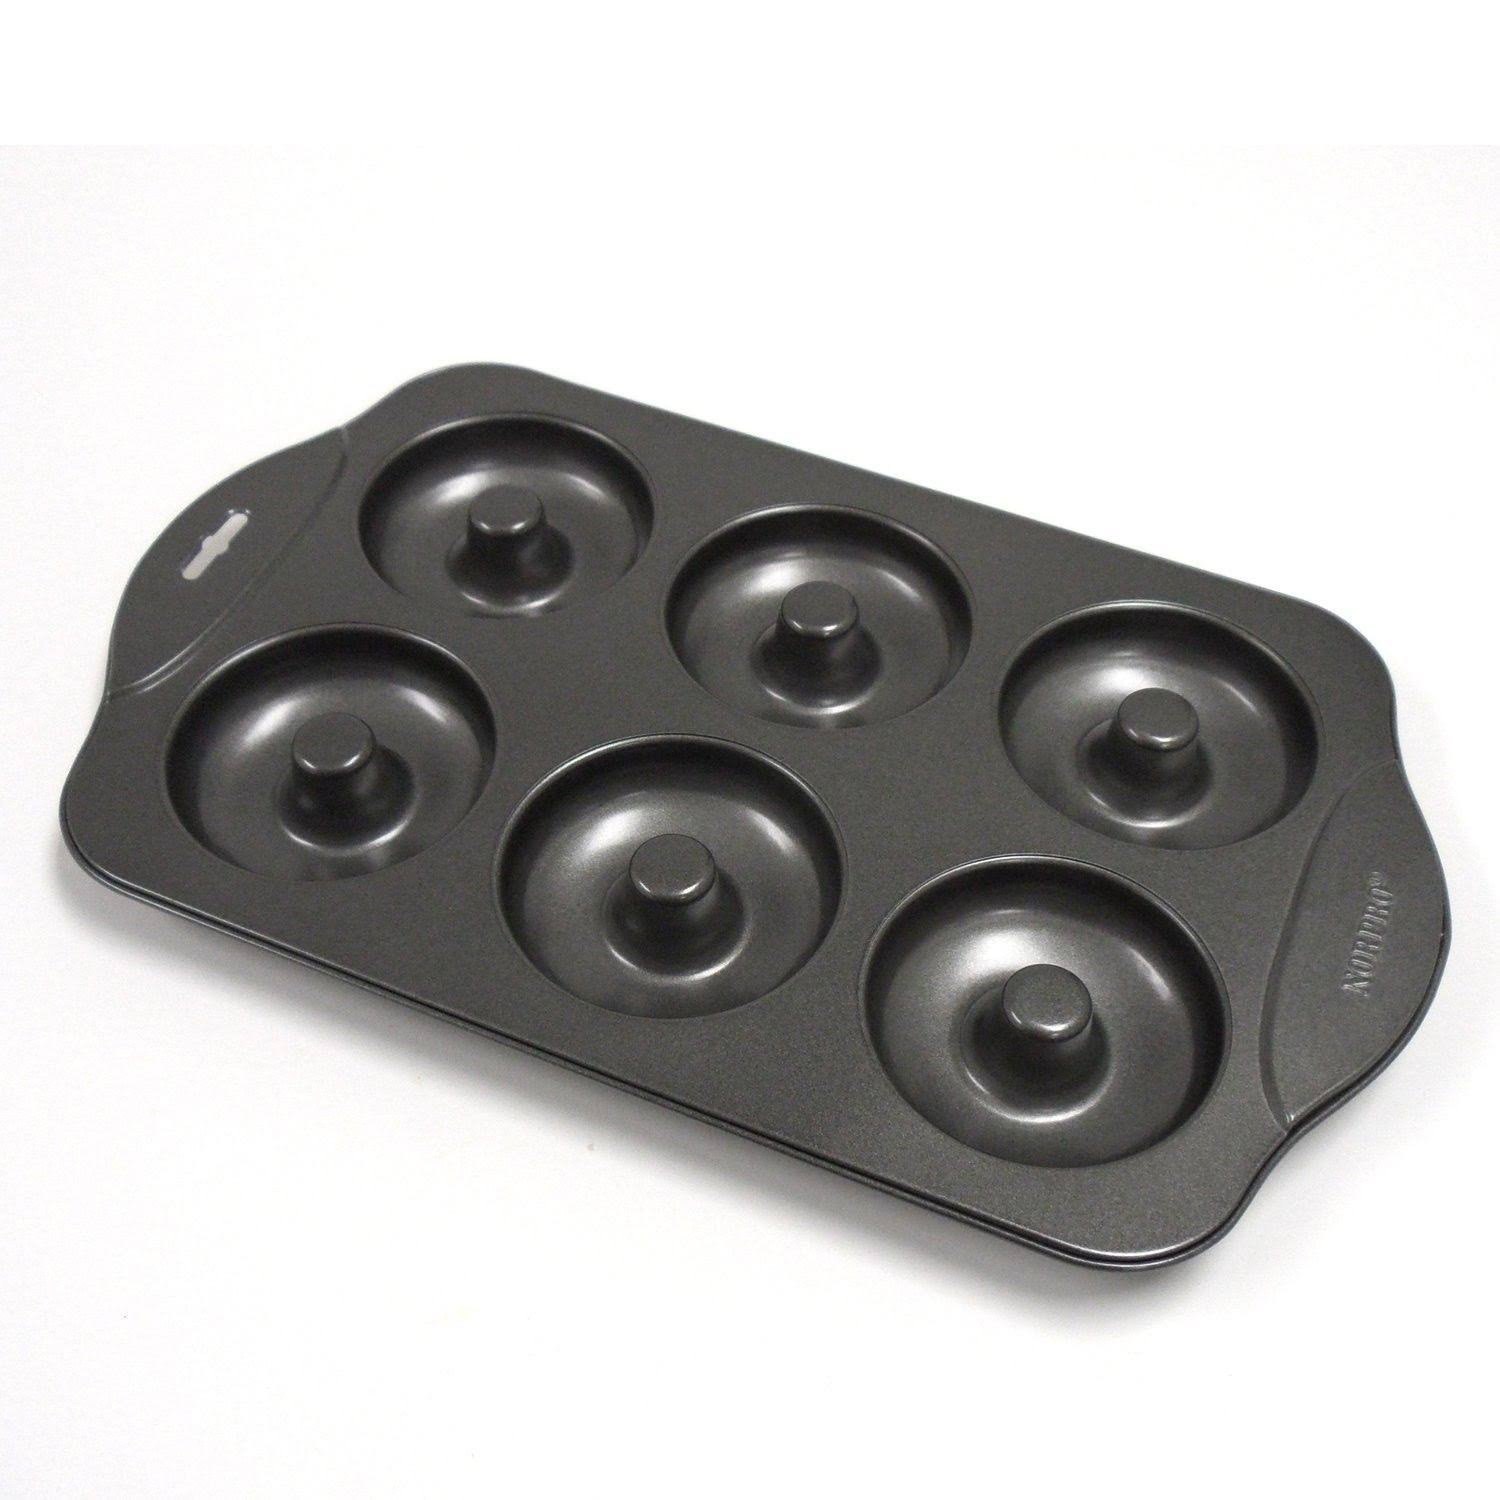 Norpro 6-Count Nonstick Donut Pan - Black